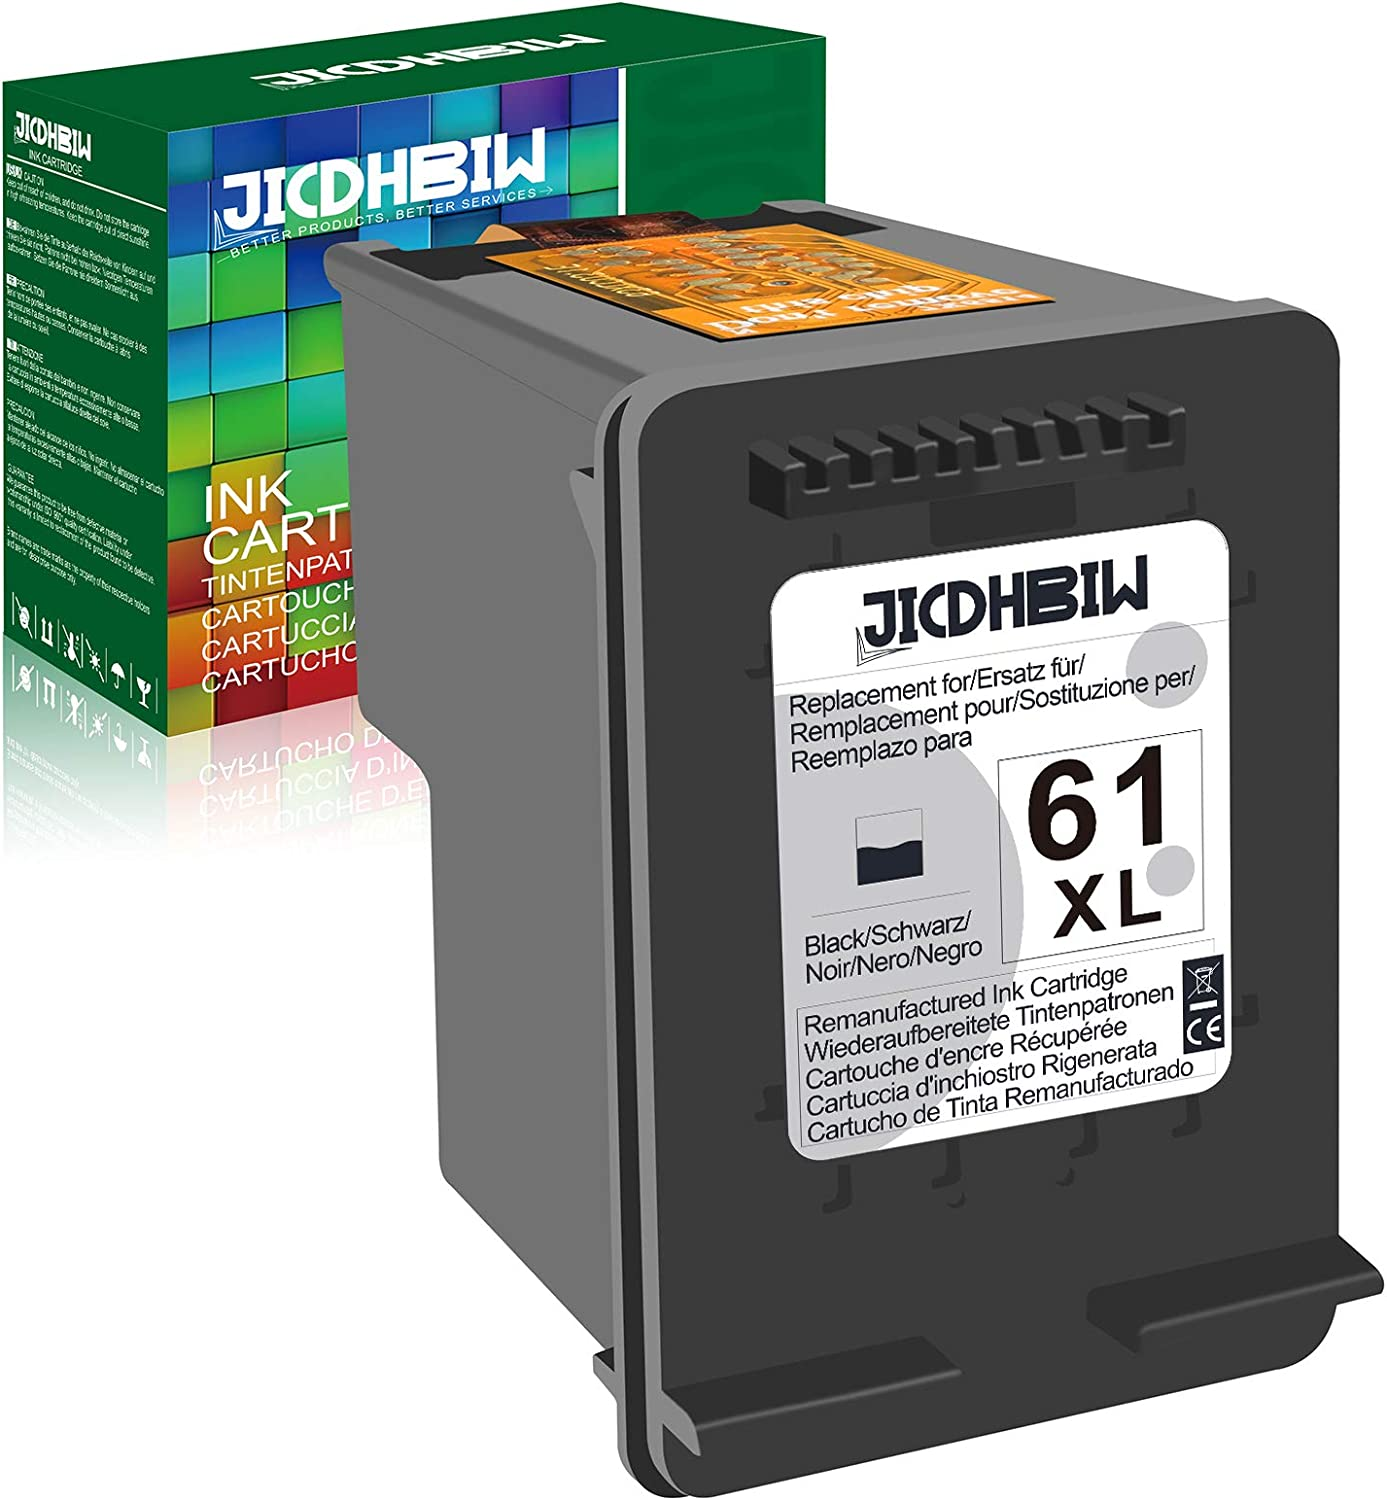 JICDHBIW Remanufactured Ink Cartridge Replacement for HP 61XL 61 XL Black (1 Pack), Work with Envy 4500 4502 5530 DeskJet 2512 1512 2542 2540 2544 3000 3052a 1055 3051a 2548 OfficeJet 4630 Printer